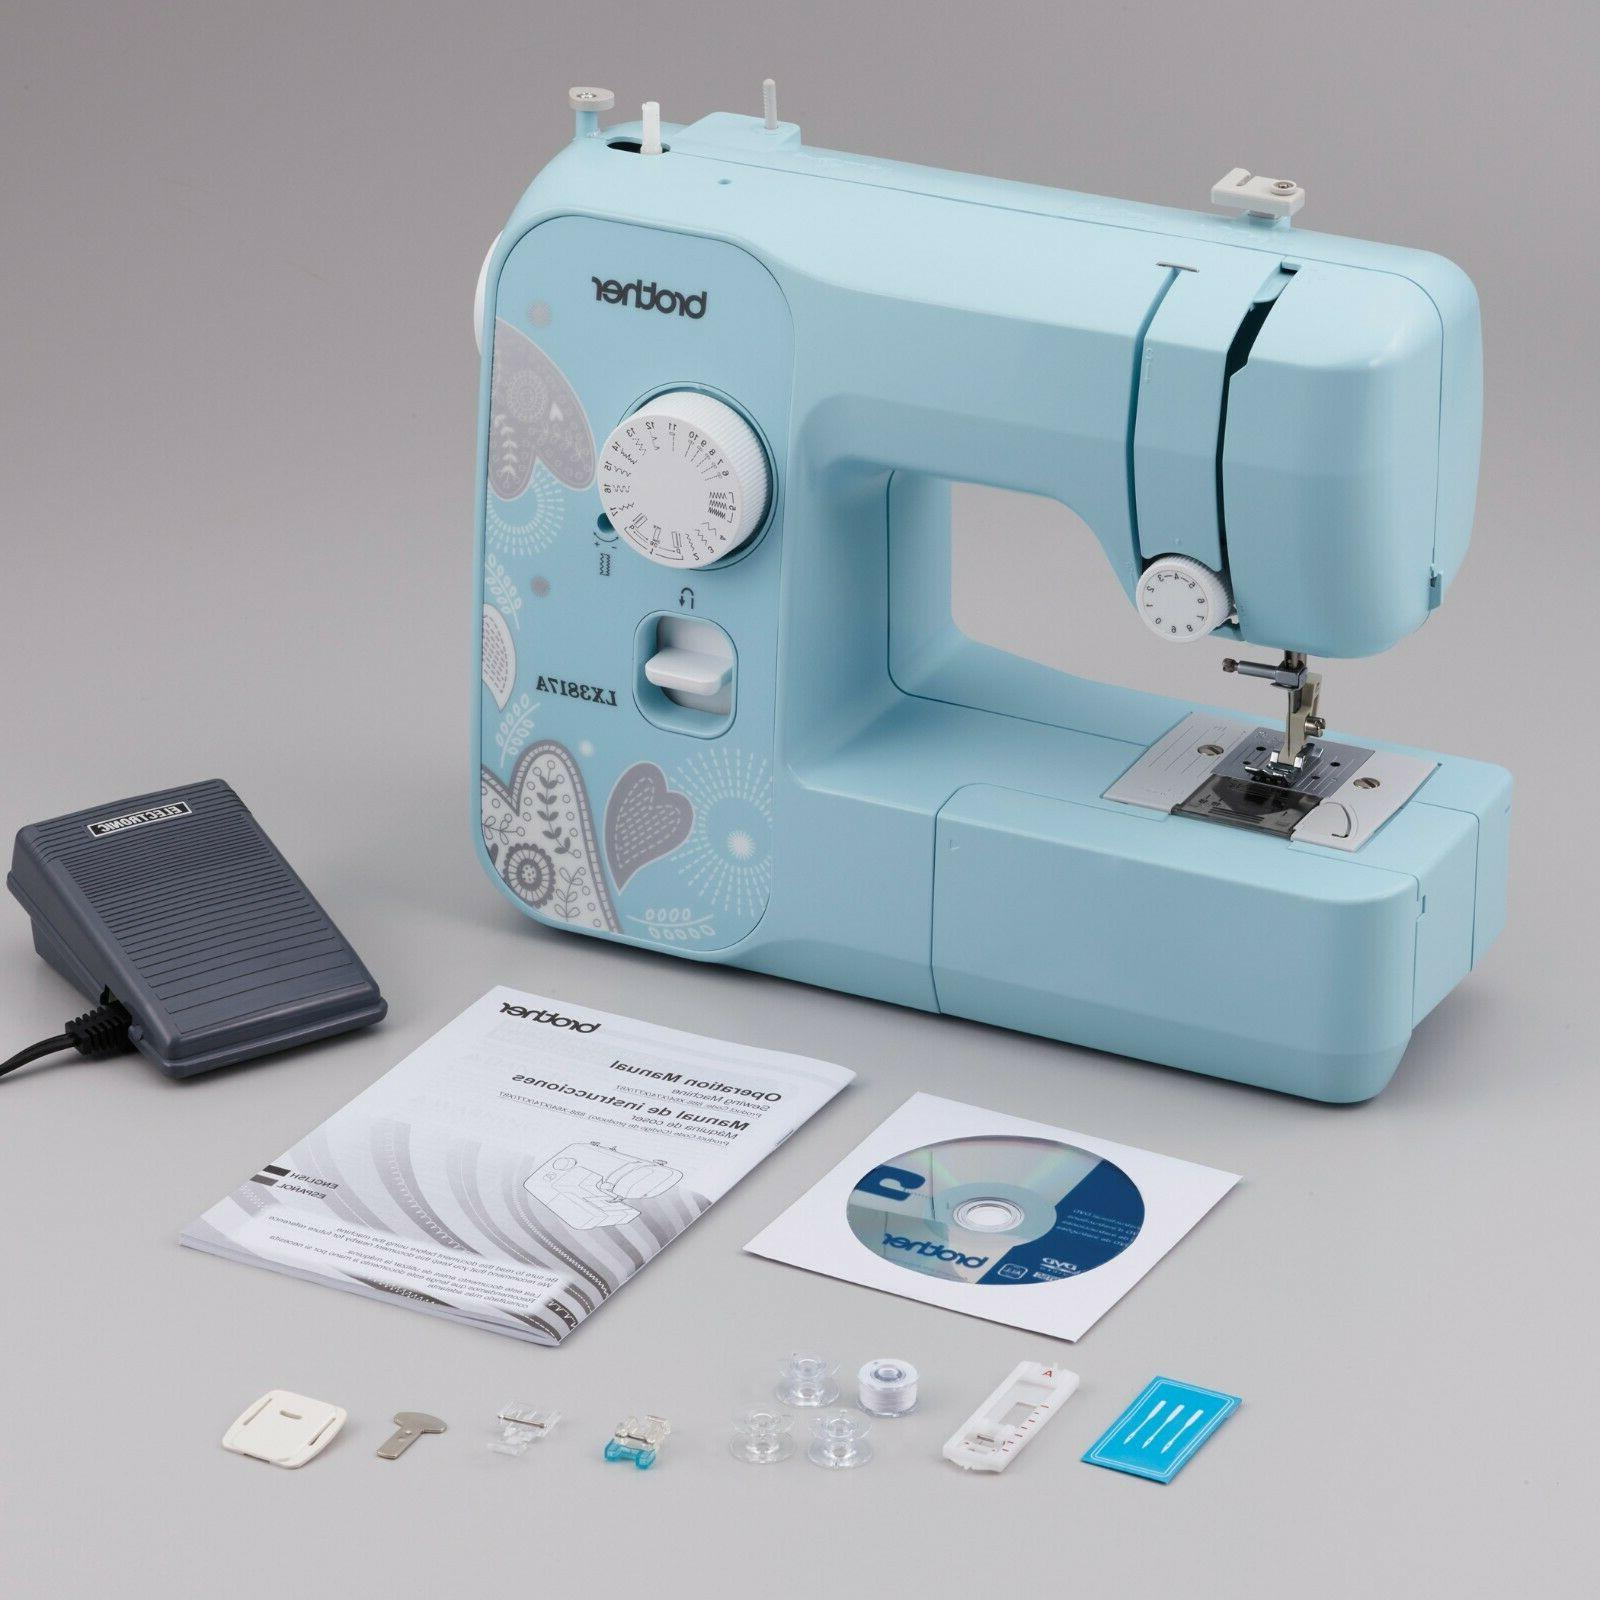 lx3817 sewing machine with 17 builtin stitches